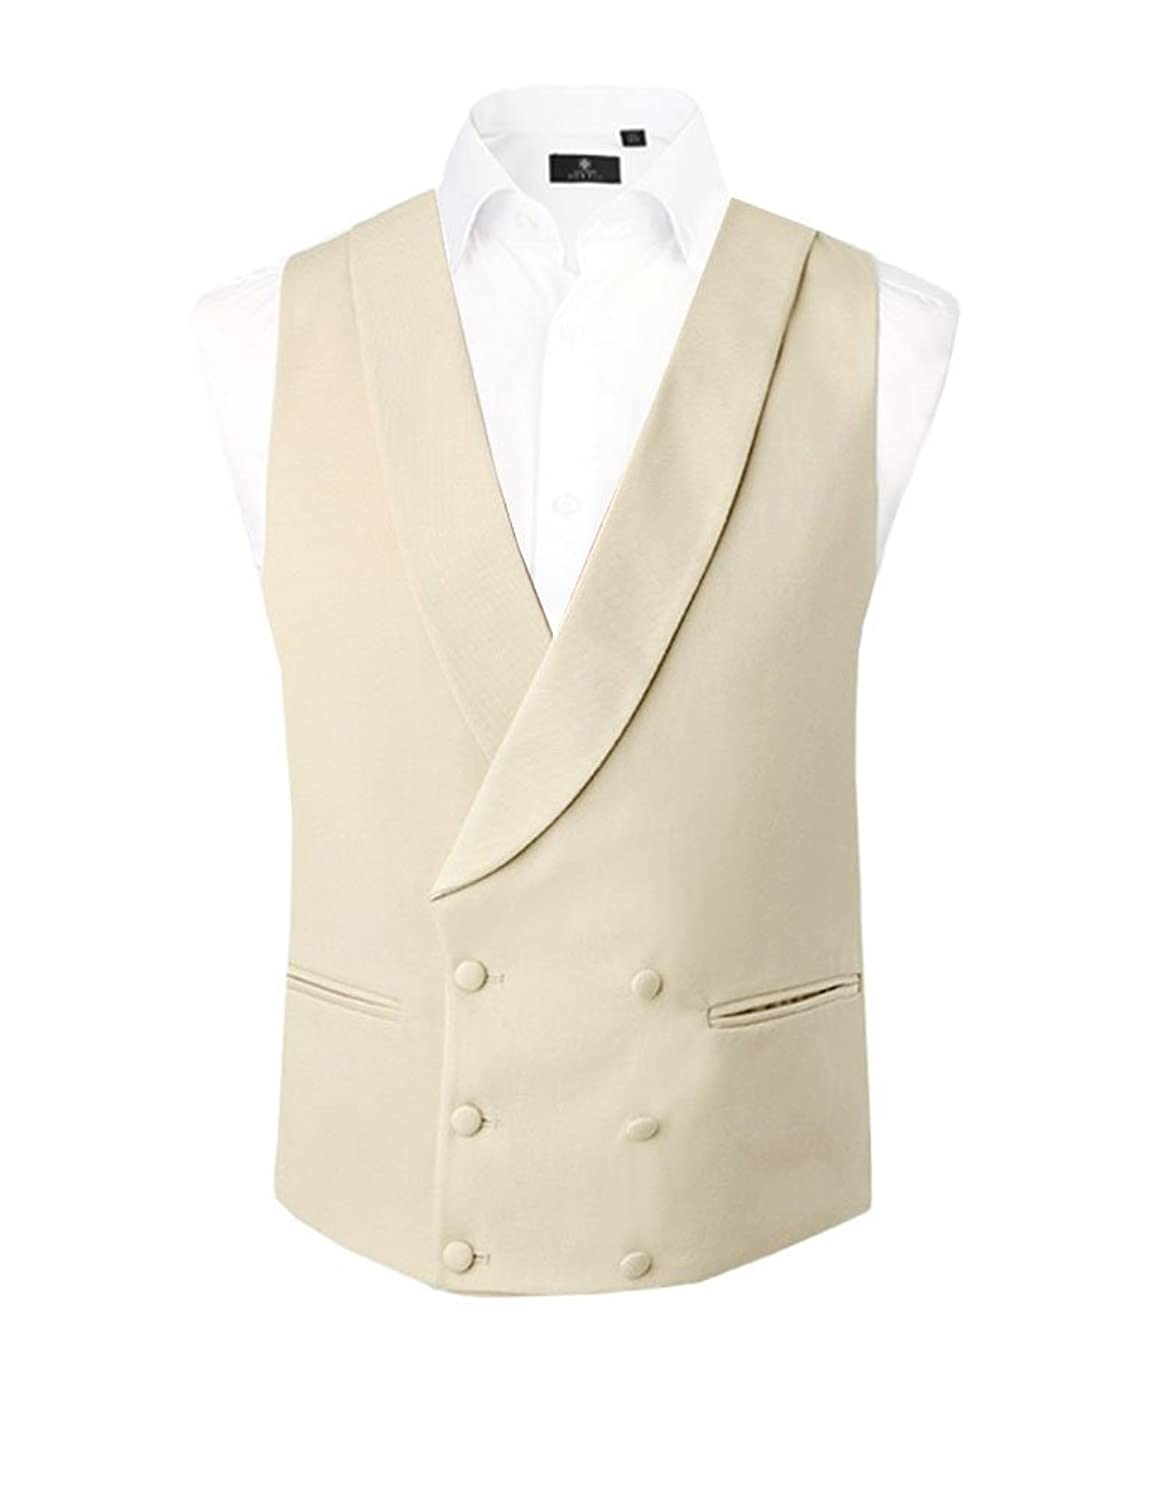 1920s Mens Formal Wear Clothing Mens Gold/Buff Double Breasted Shawl Lapel Morning Suit Waistcoat £39.99 AT vintagedancer.com